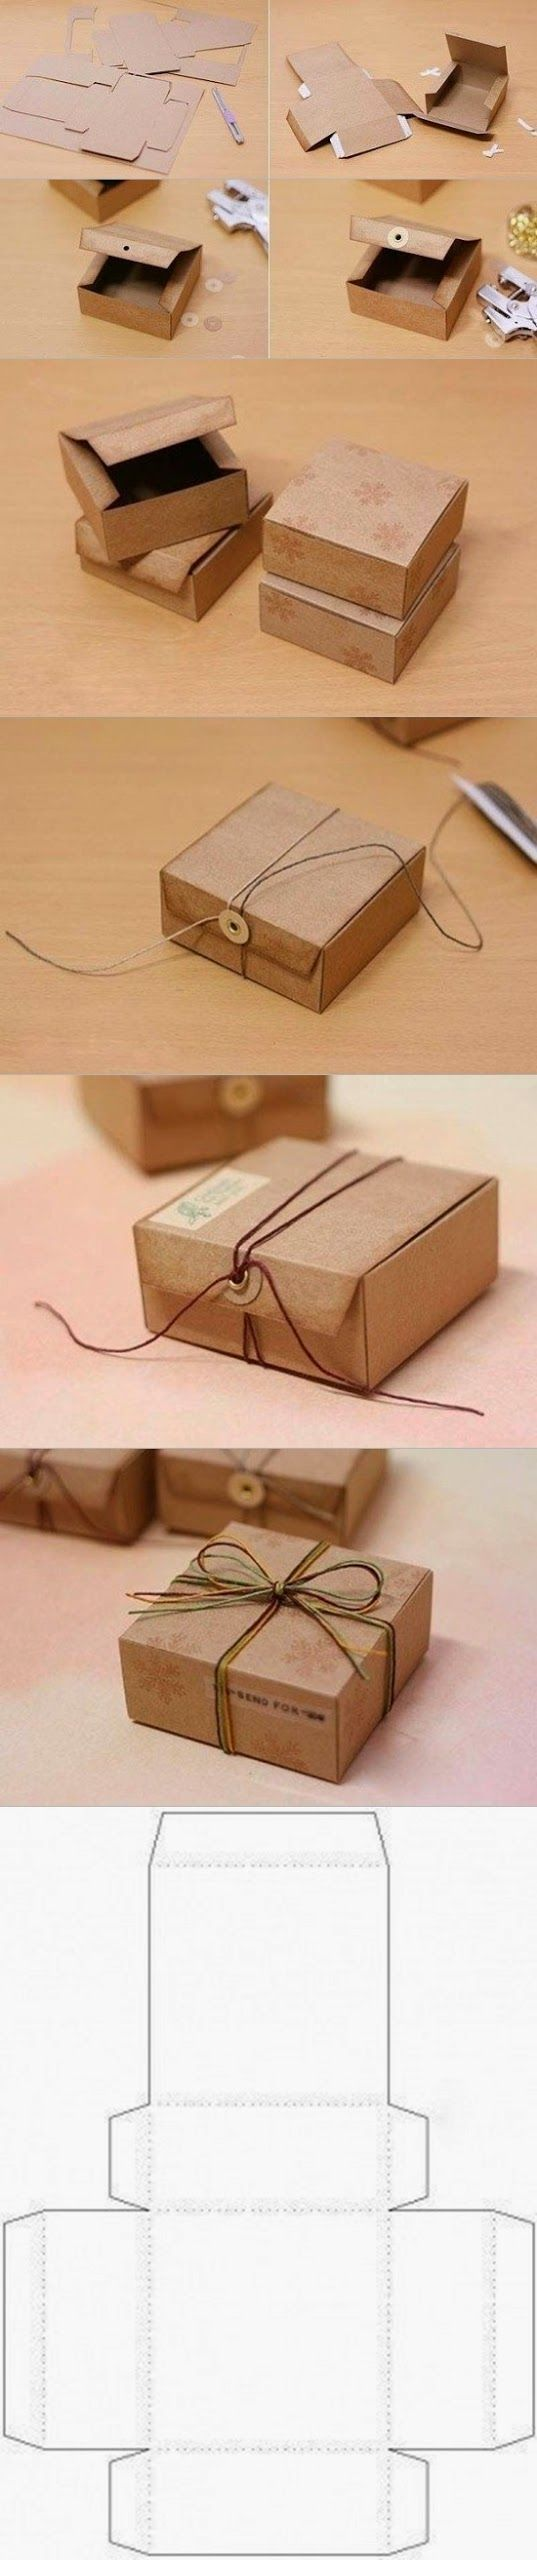 25 Unique And Creative Cardboard Gift Boxes Ideas On Pinterest